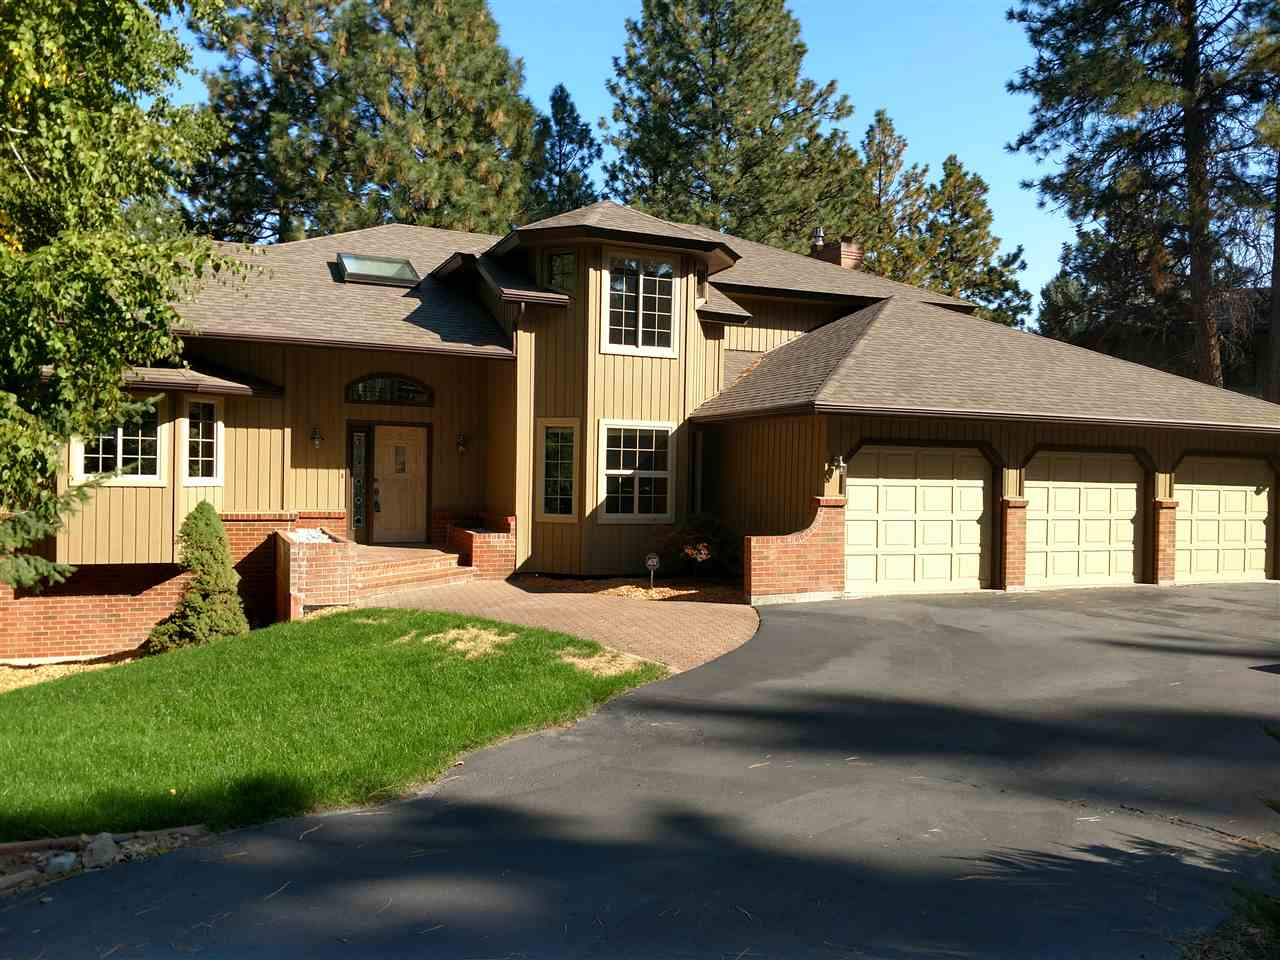 Single Family Home for Sale at 4608 S Bella Vista Drive 4608 S Bella Vista Drive Veradale, Washington 99037 United States